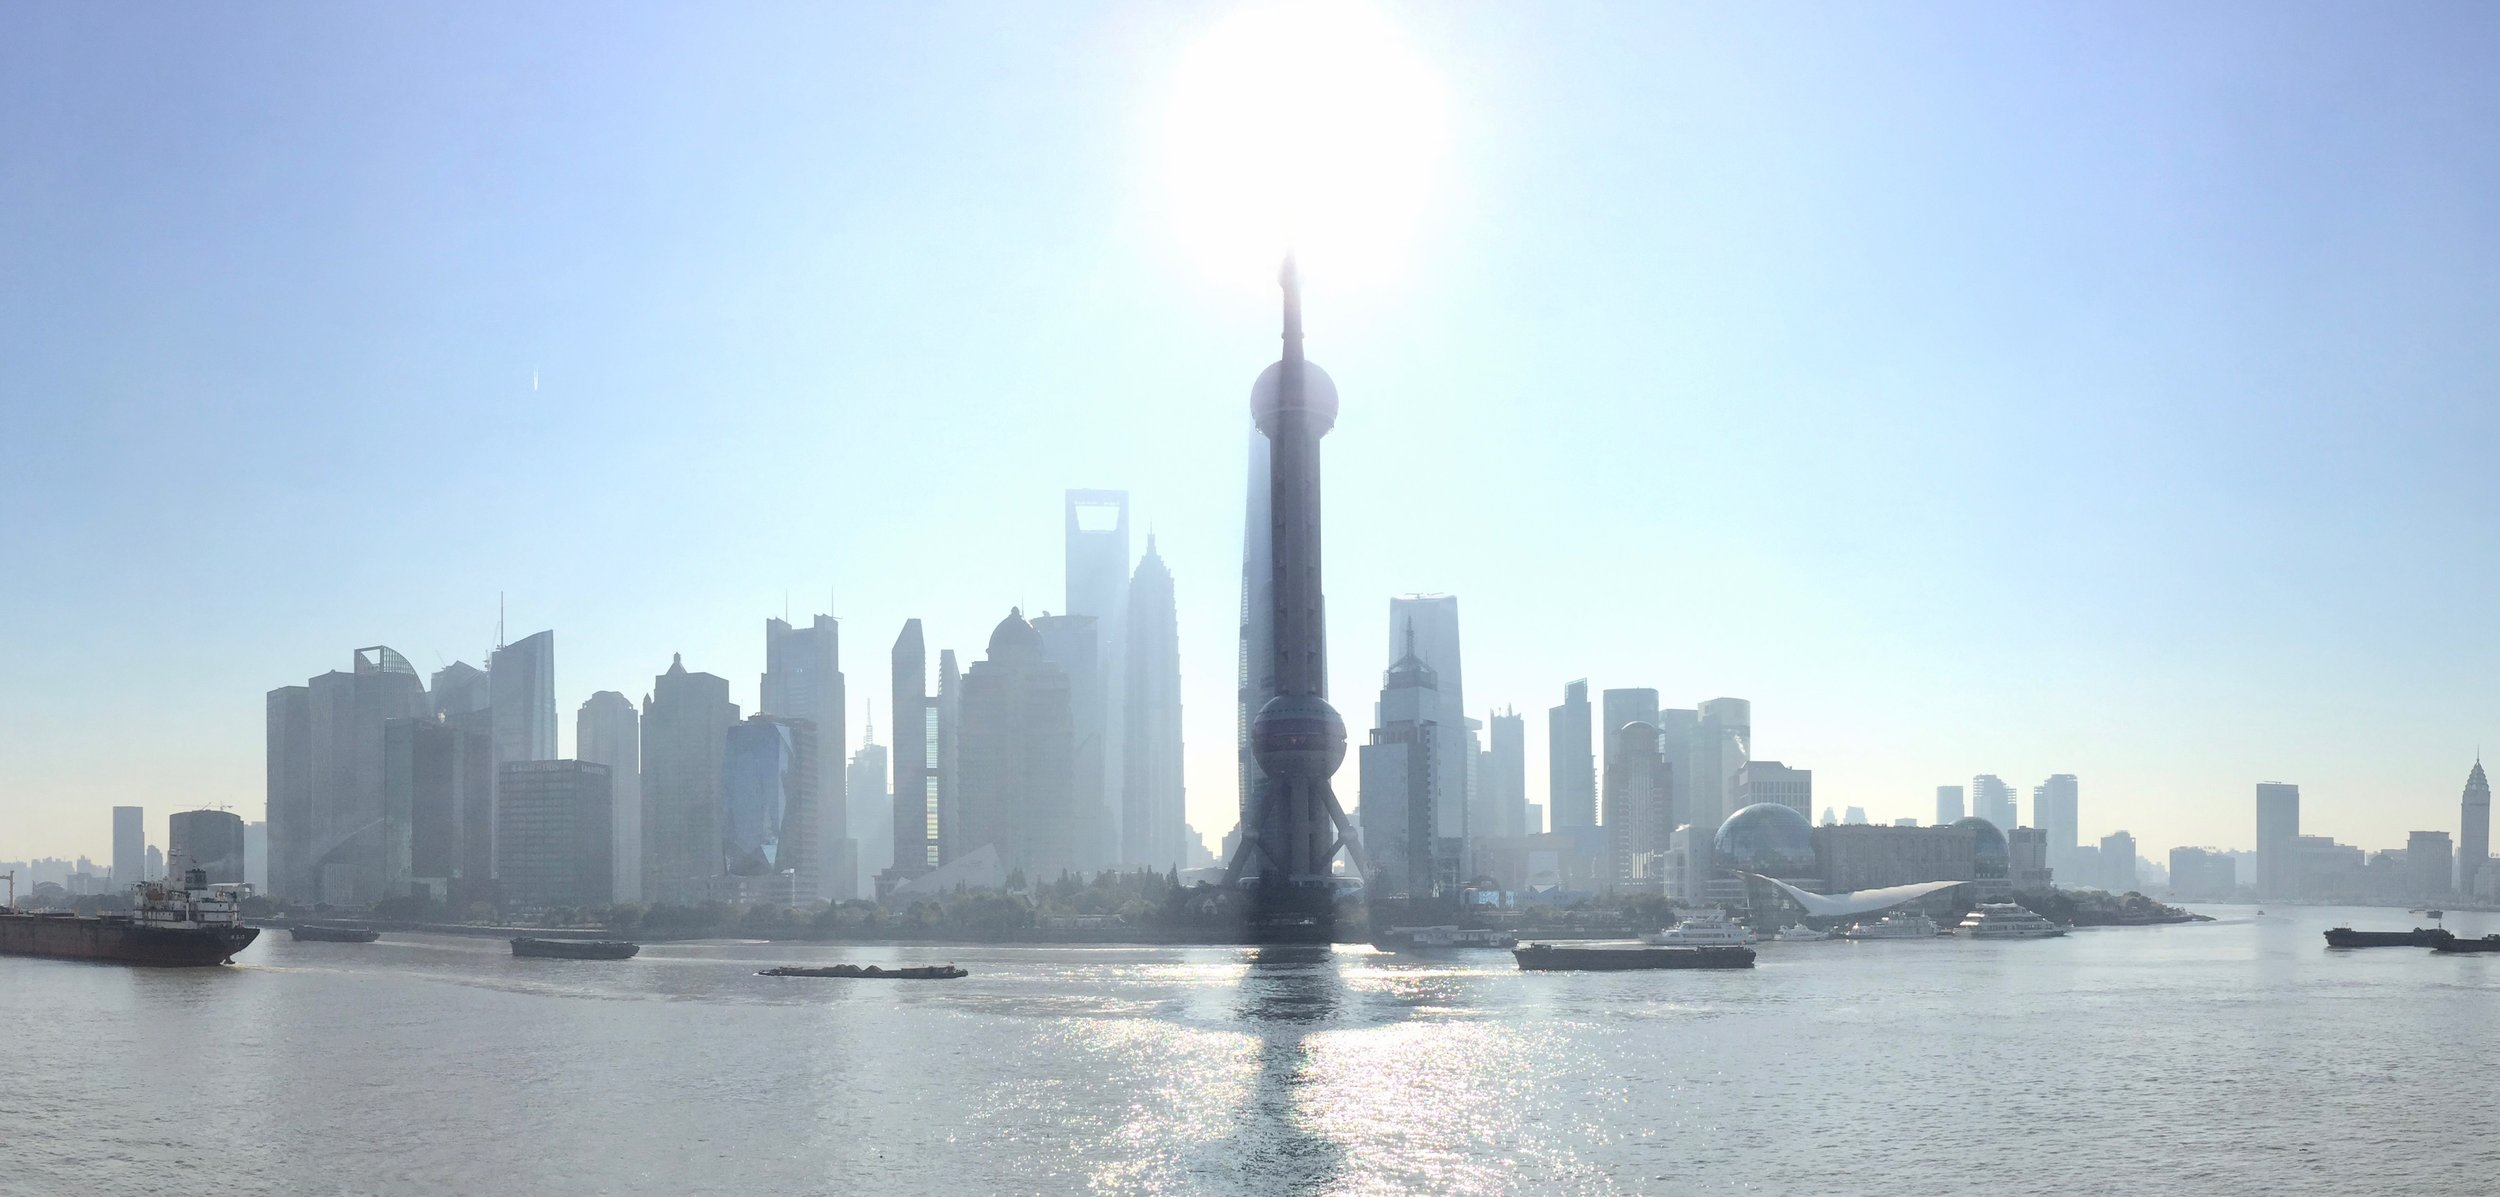 Morning view of the Huangpu River and the Puxi Financial Center from the Bund (Shanghai, China)